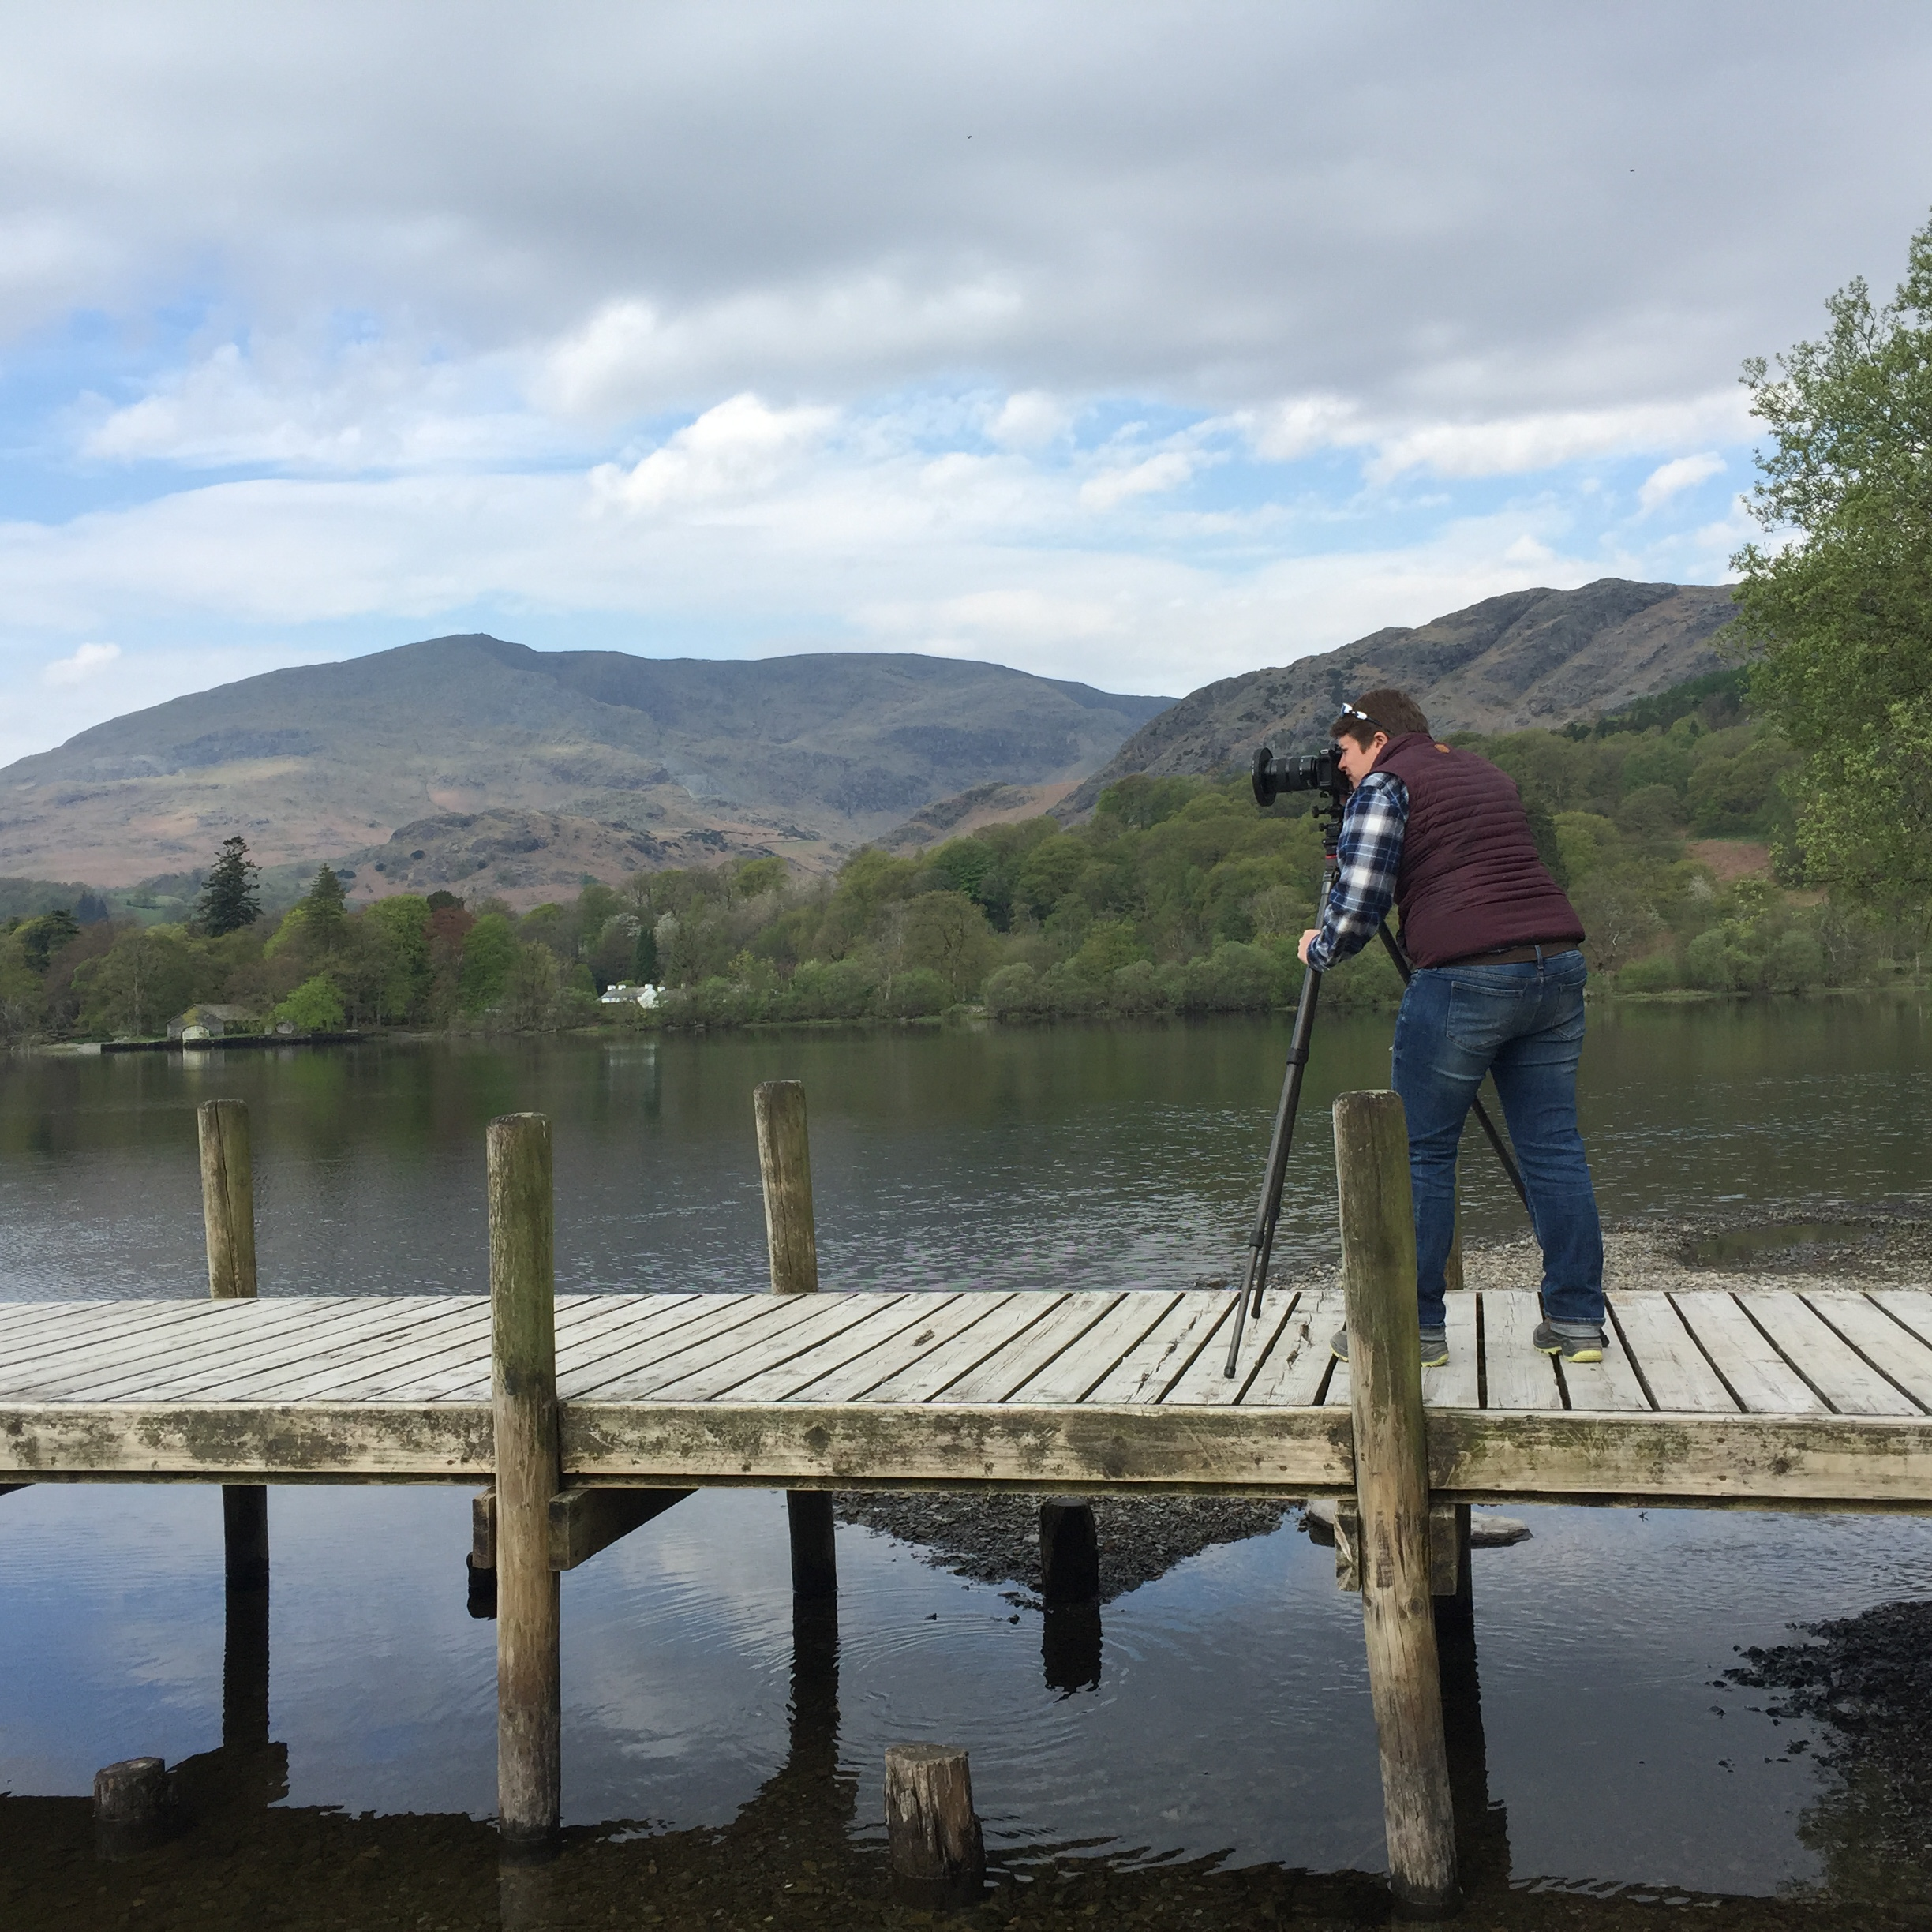 Shooting the Leica SL with some big neutral density filters in the Lake District of England